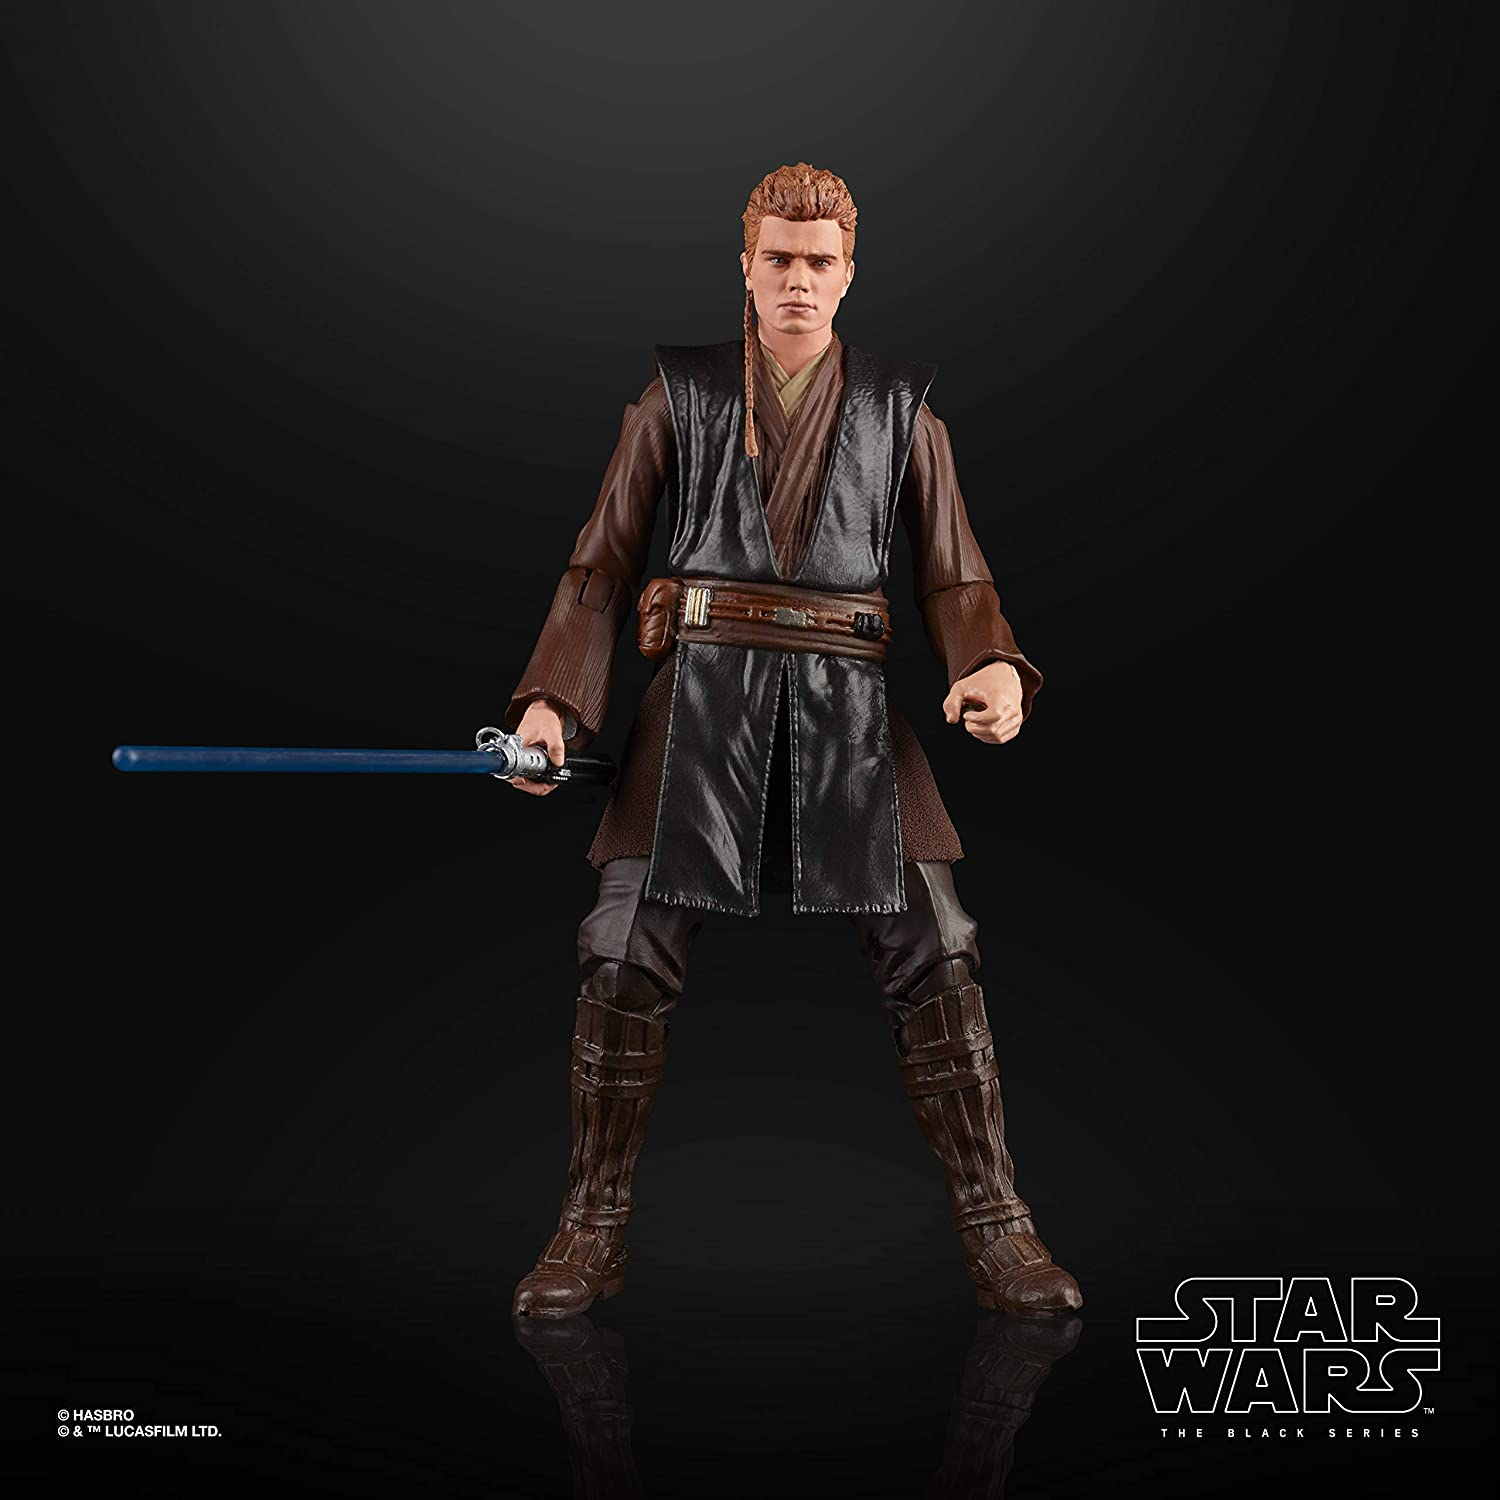 Anakin Skywalker (Padawan): Star Wars Black Series Action Figure